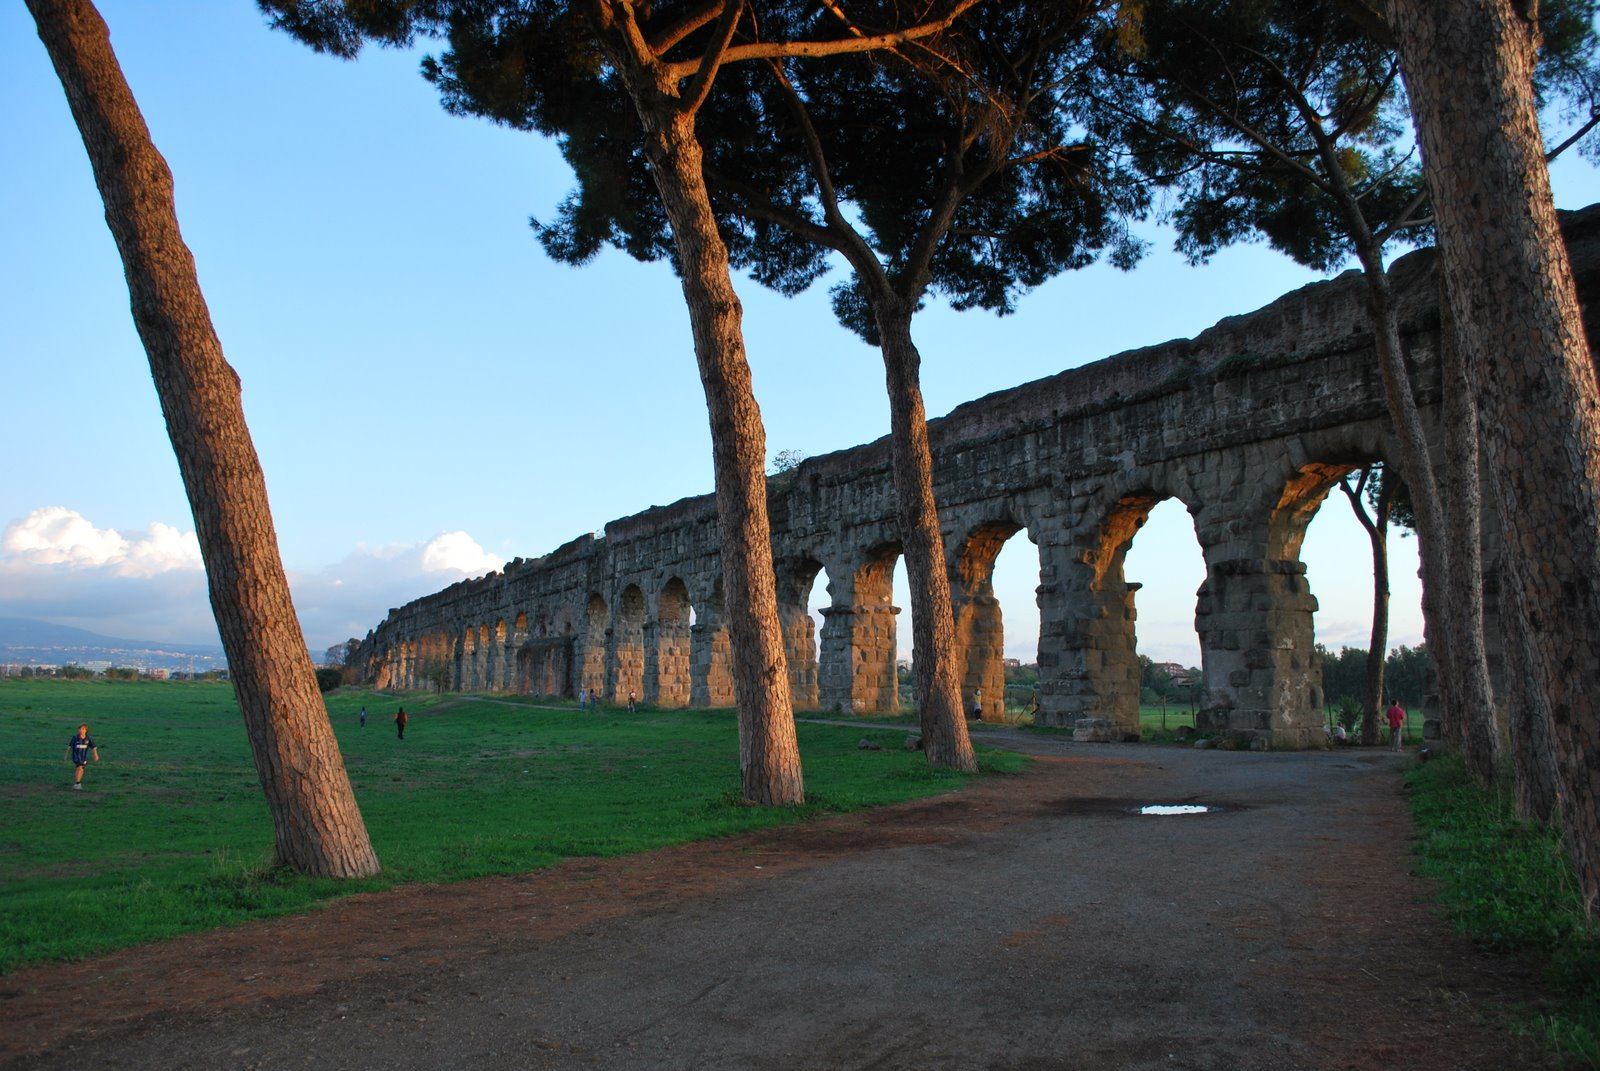 an ancient Roman acqueduct crosses the Park of the Acqueducts in Rome